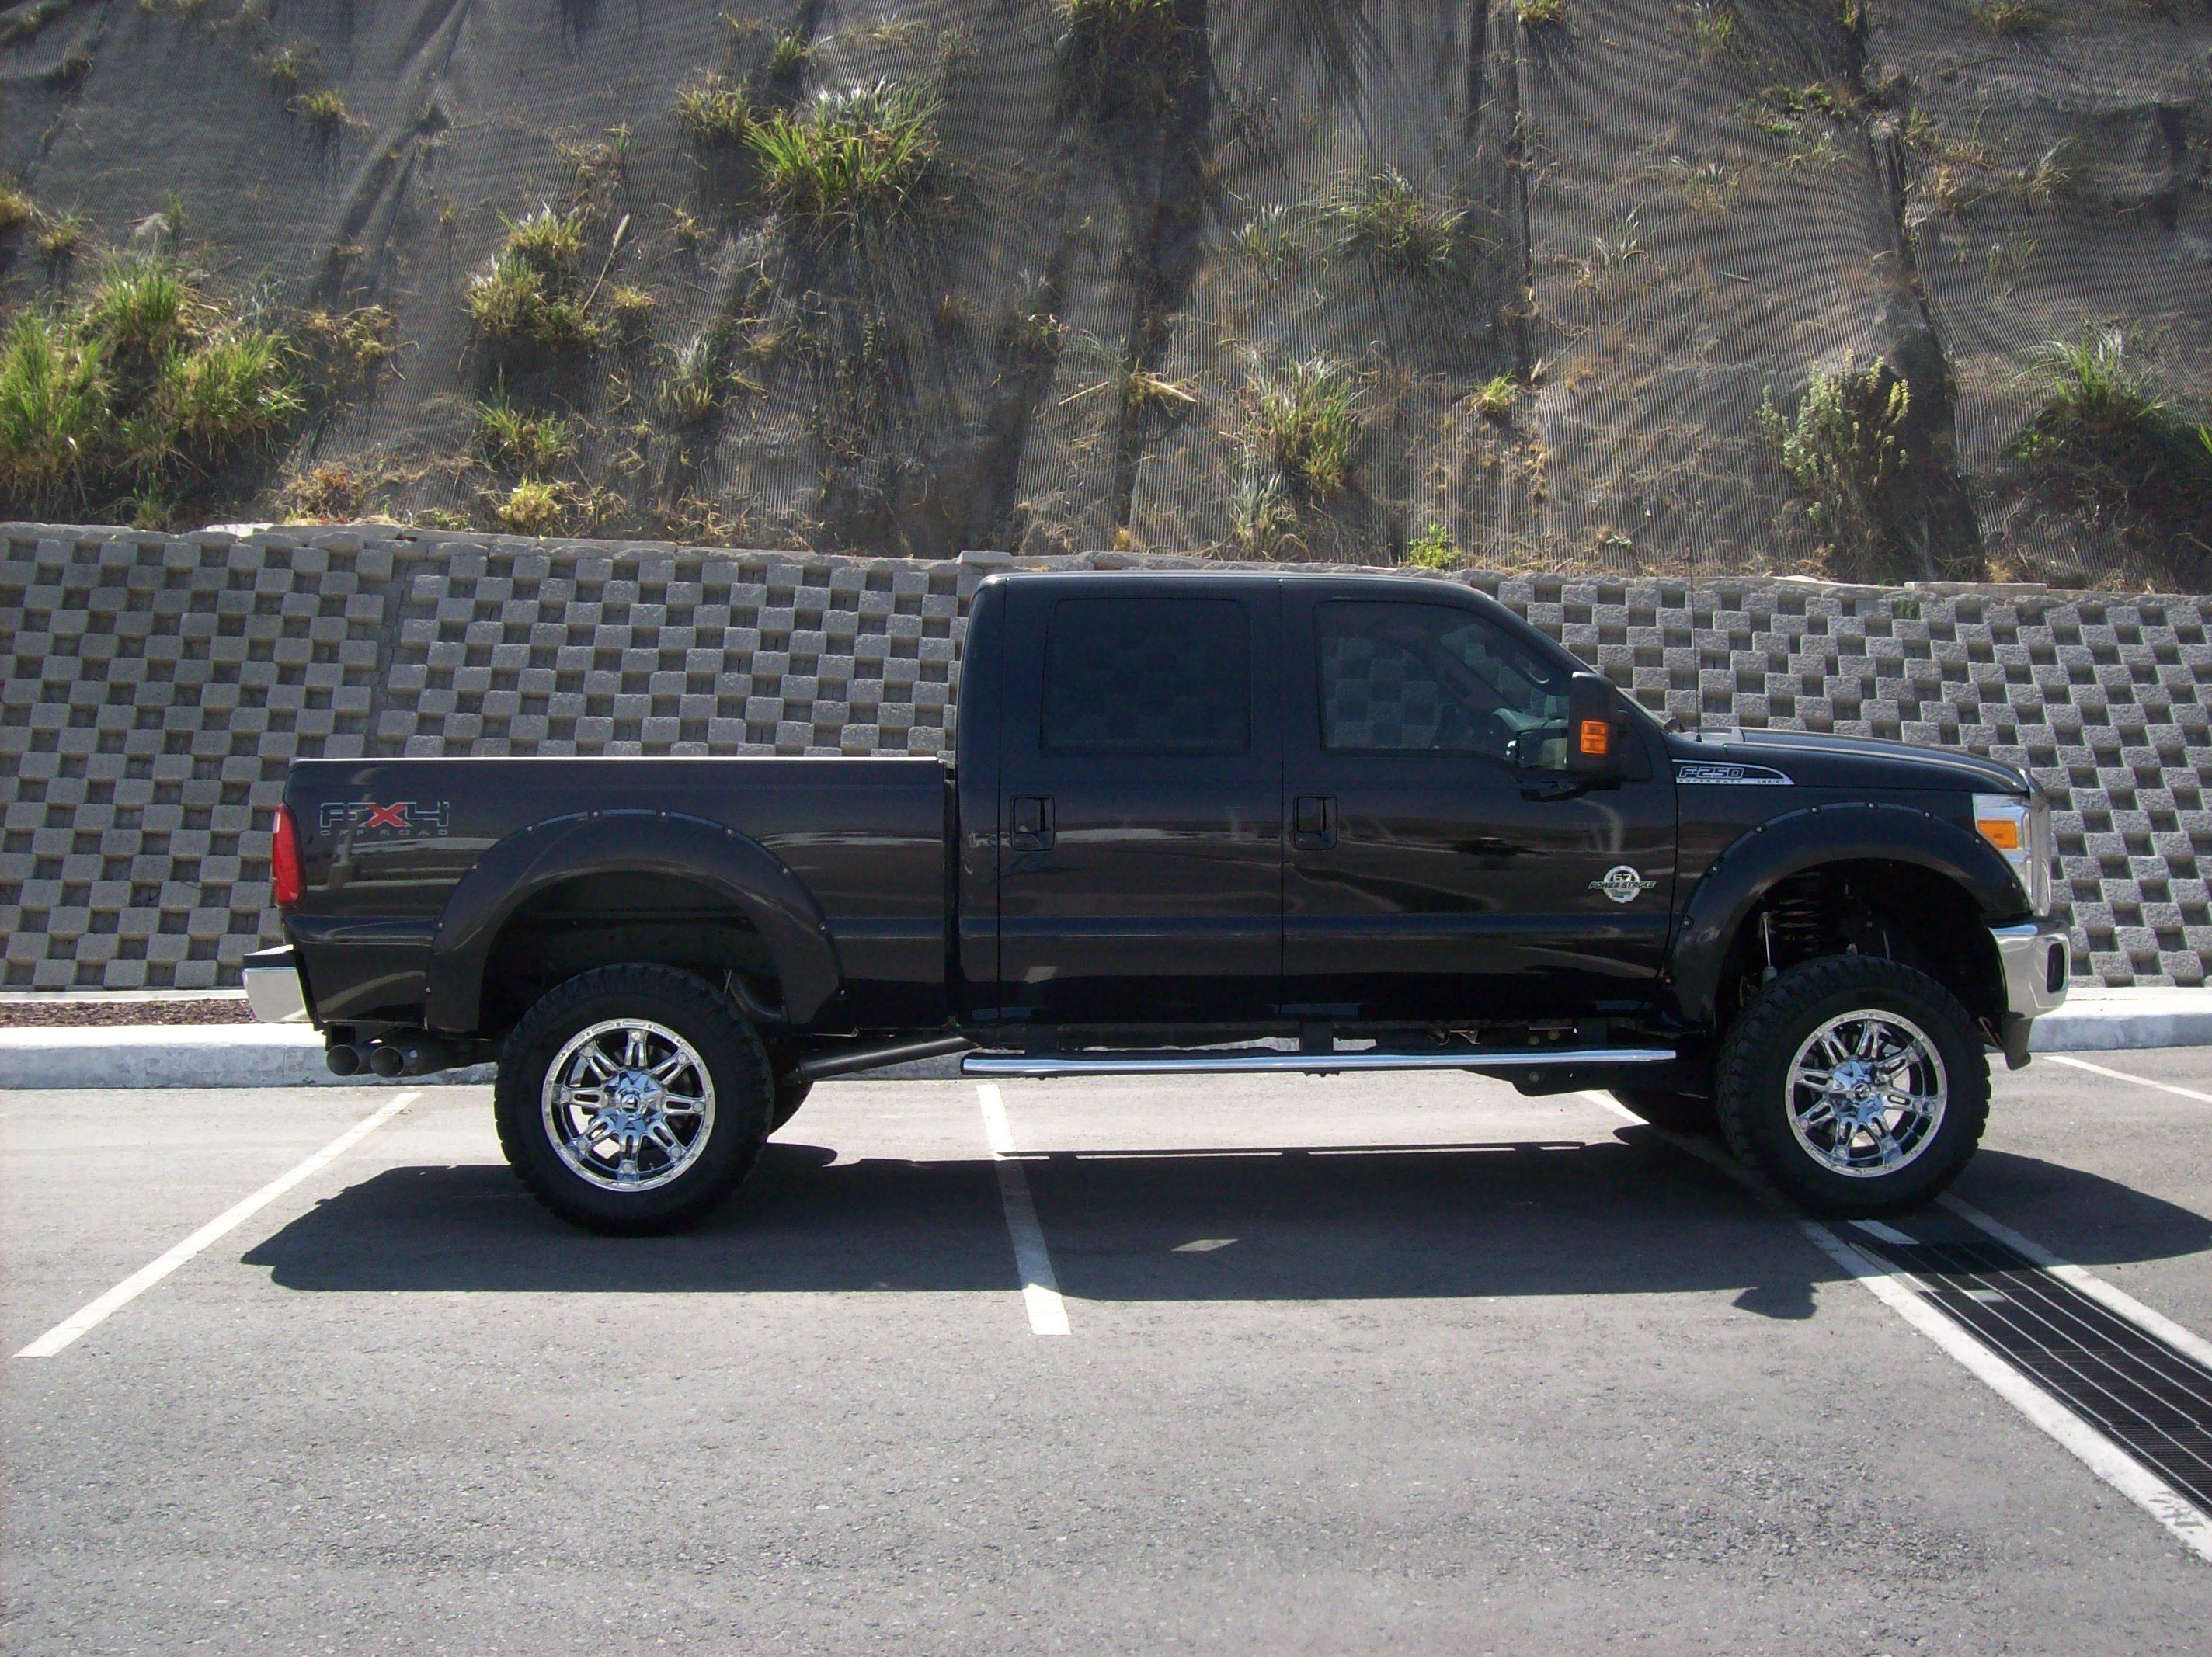 Ford F250 8 Foot Bed For Sale >> Sinaloastang 2011 Ford F250 Super Duty Crew Cablariat Pickup 4d 8 Ft